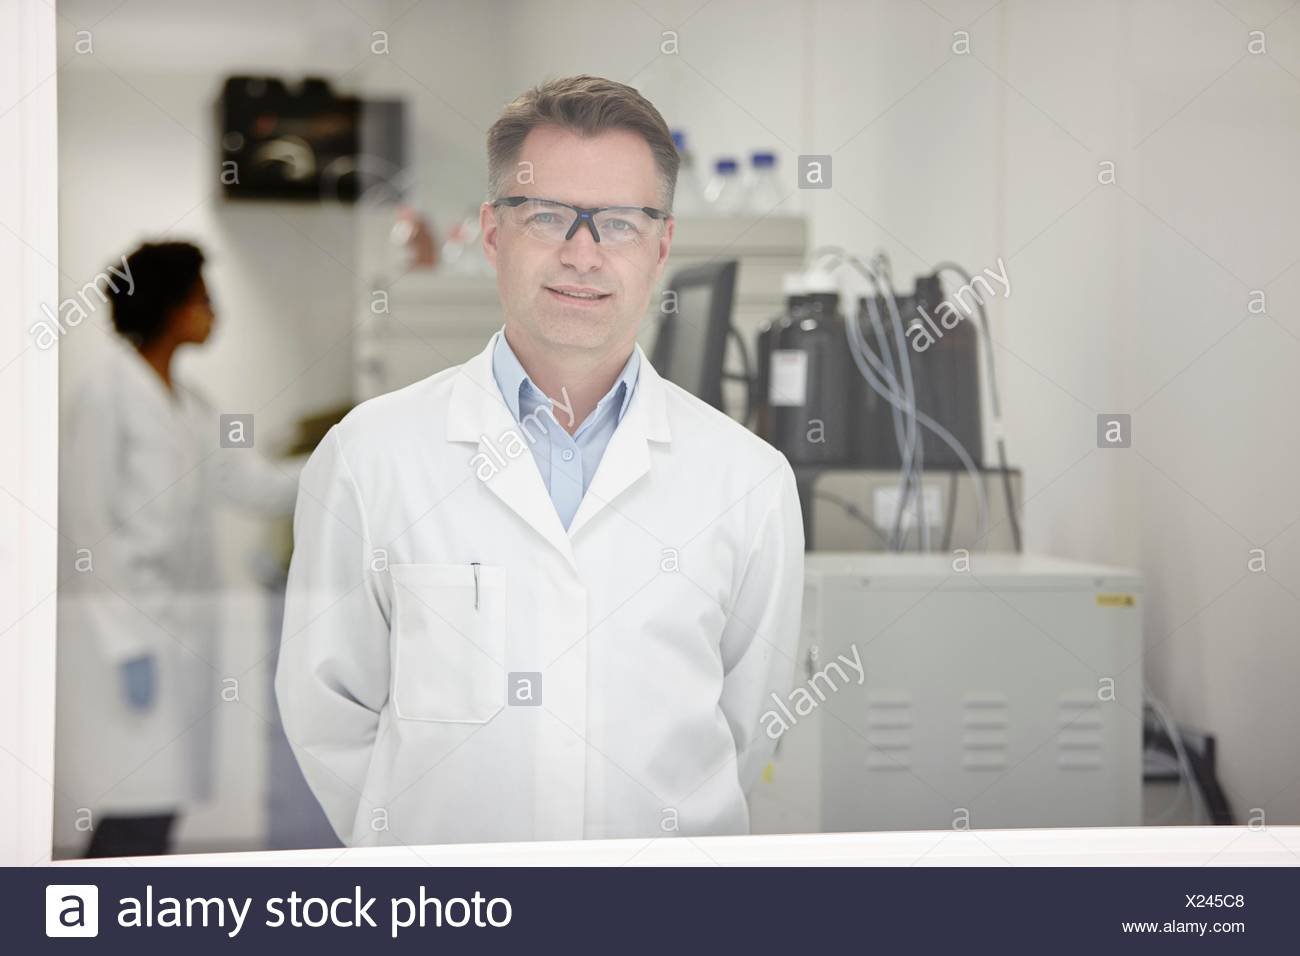 Scientist smiling in laboratory, colleague working in background - Stock Image